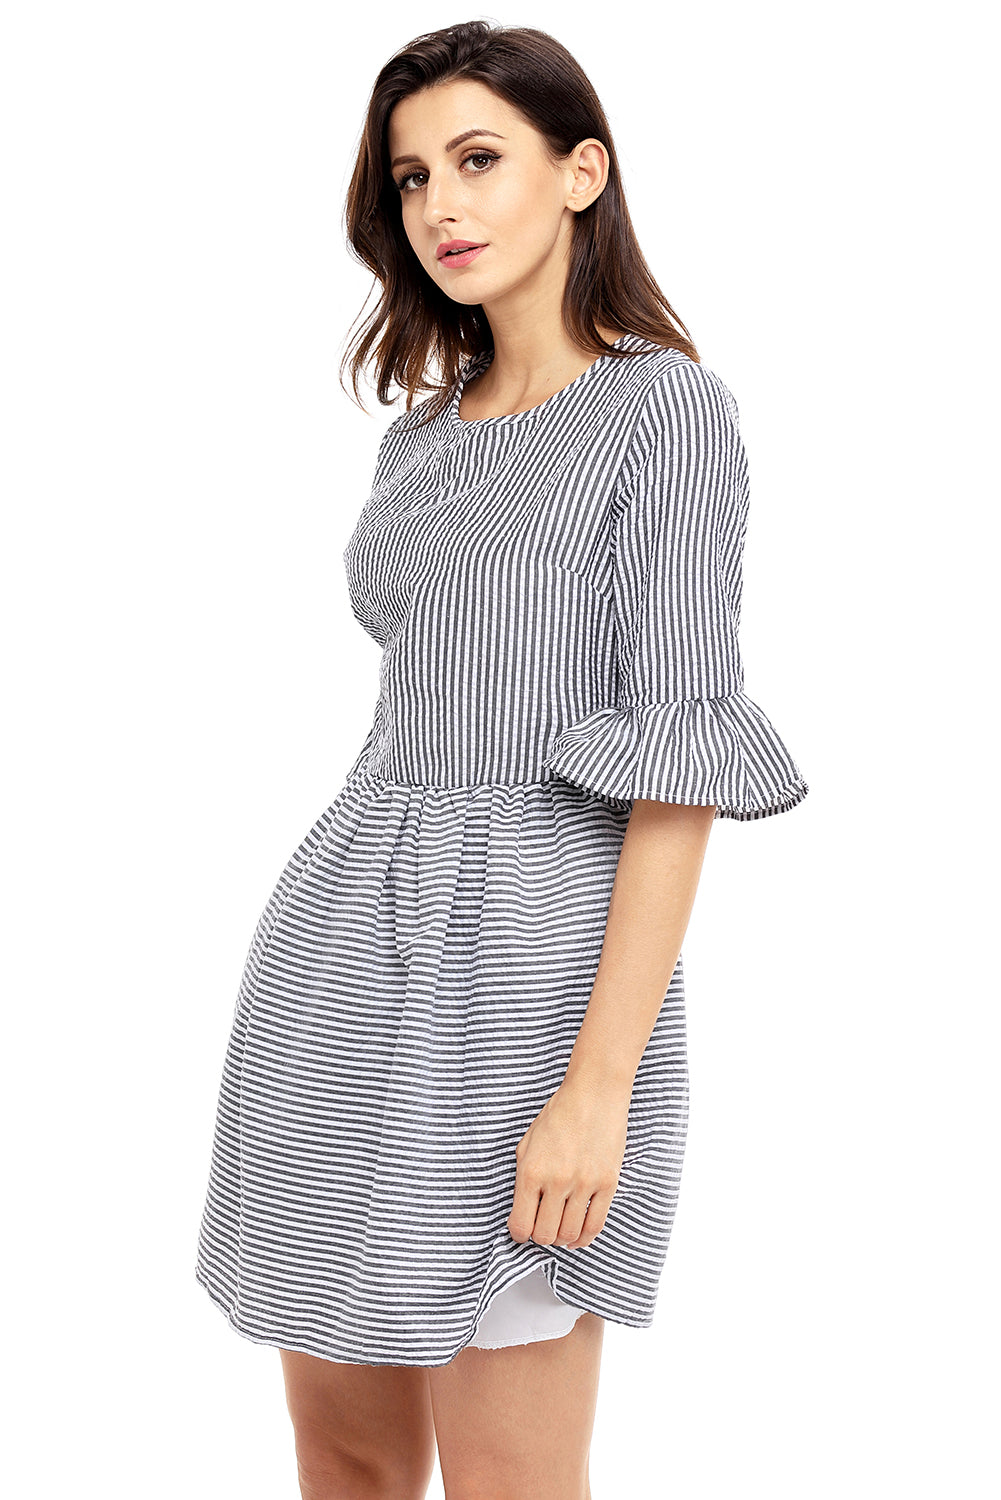 e64b2f6af11 Sexy Black White Stripe Flounce Sleeve Seersucker Dress – SEXY AFFORDABLE  CLOTHING